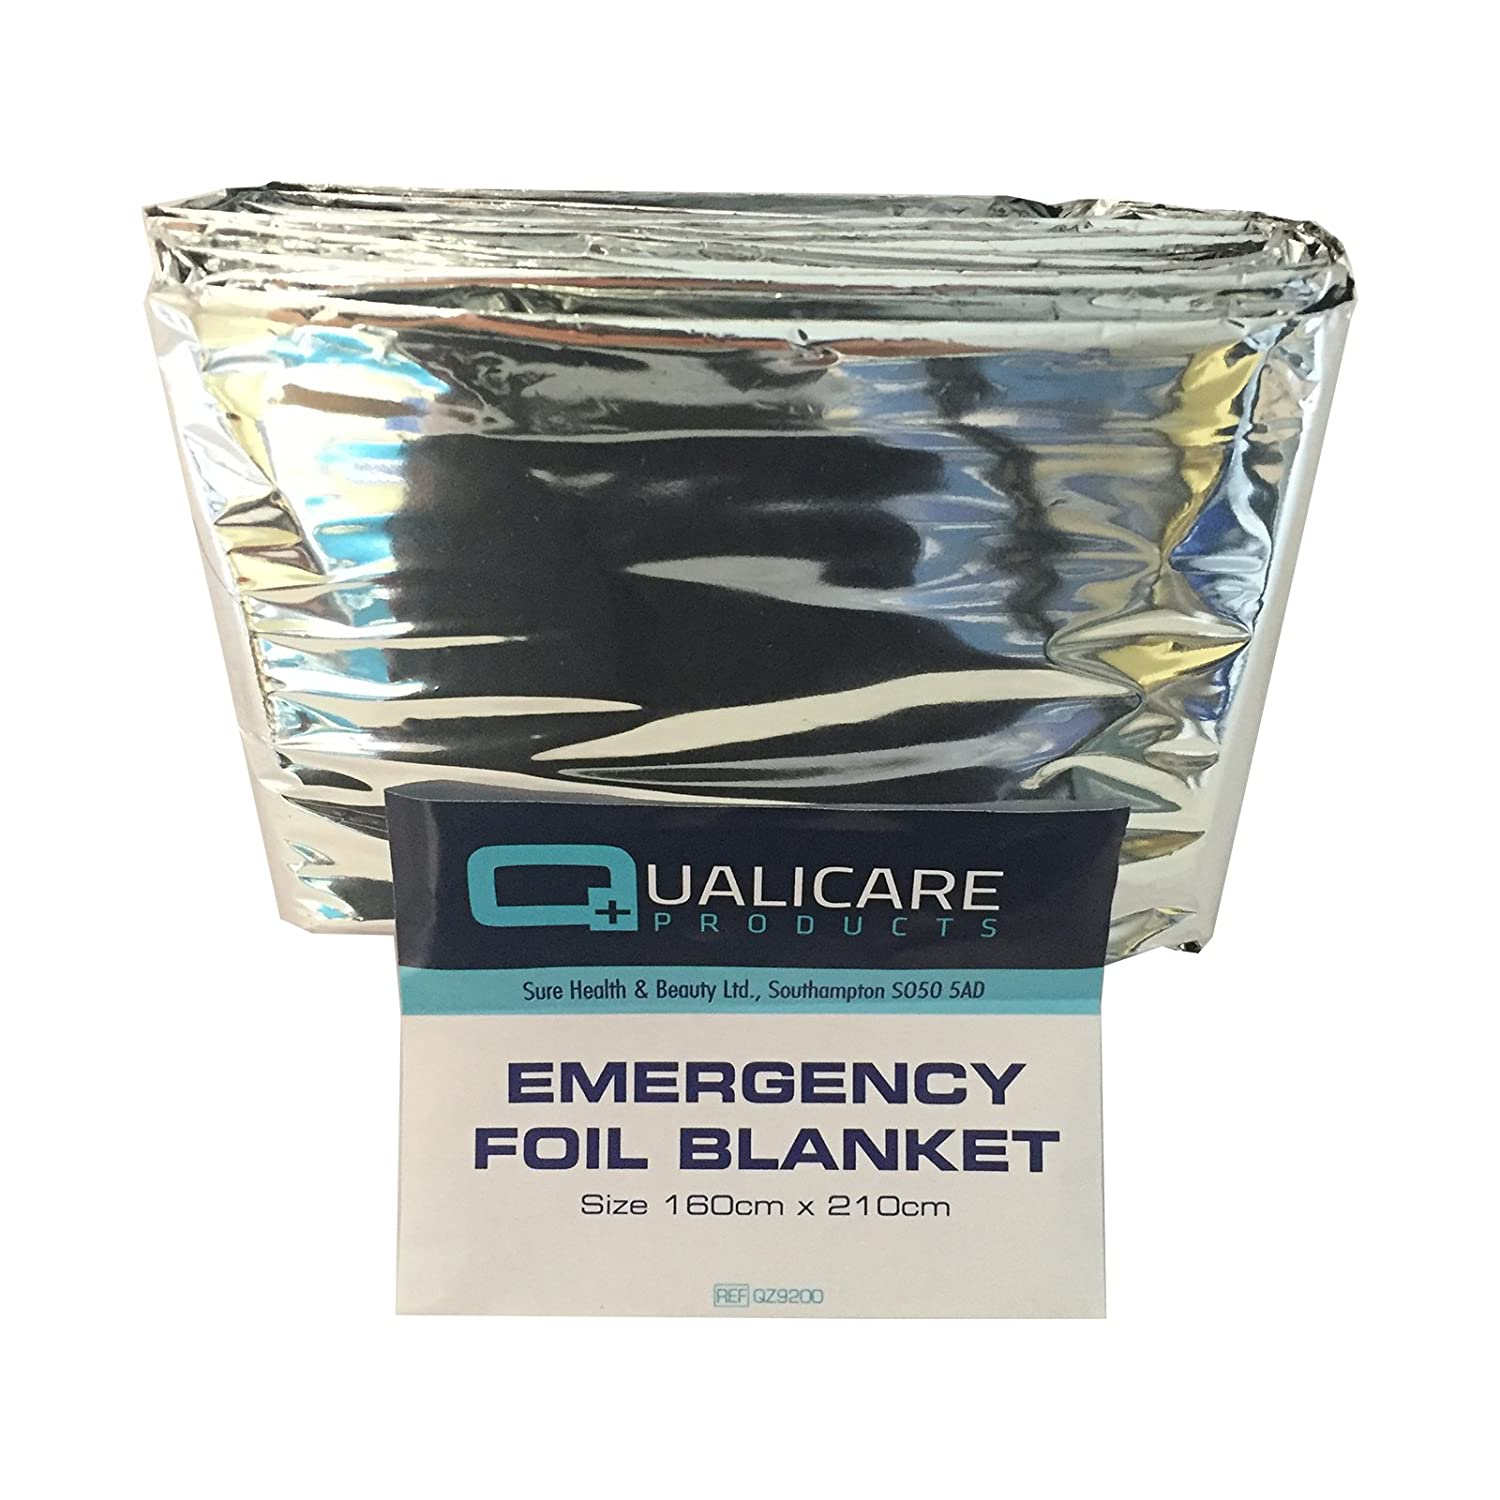 6 PACK OF QUALICARE THERMAL EMERGENCY FOIL SPACE FIRST AID SURVIVAL SILVER FOIL BLANKETS Sure Thermal